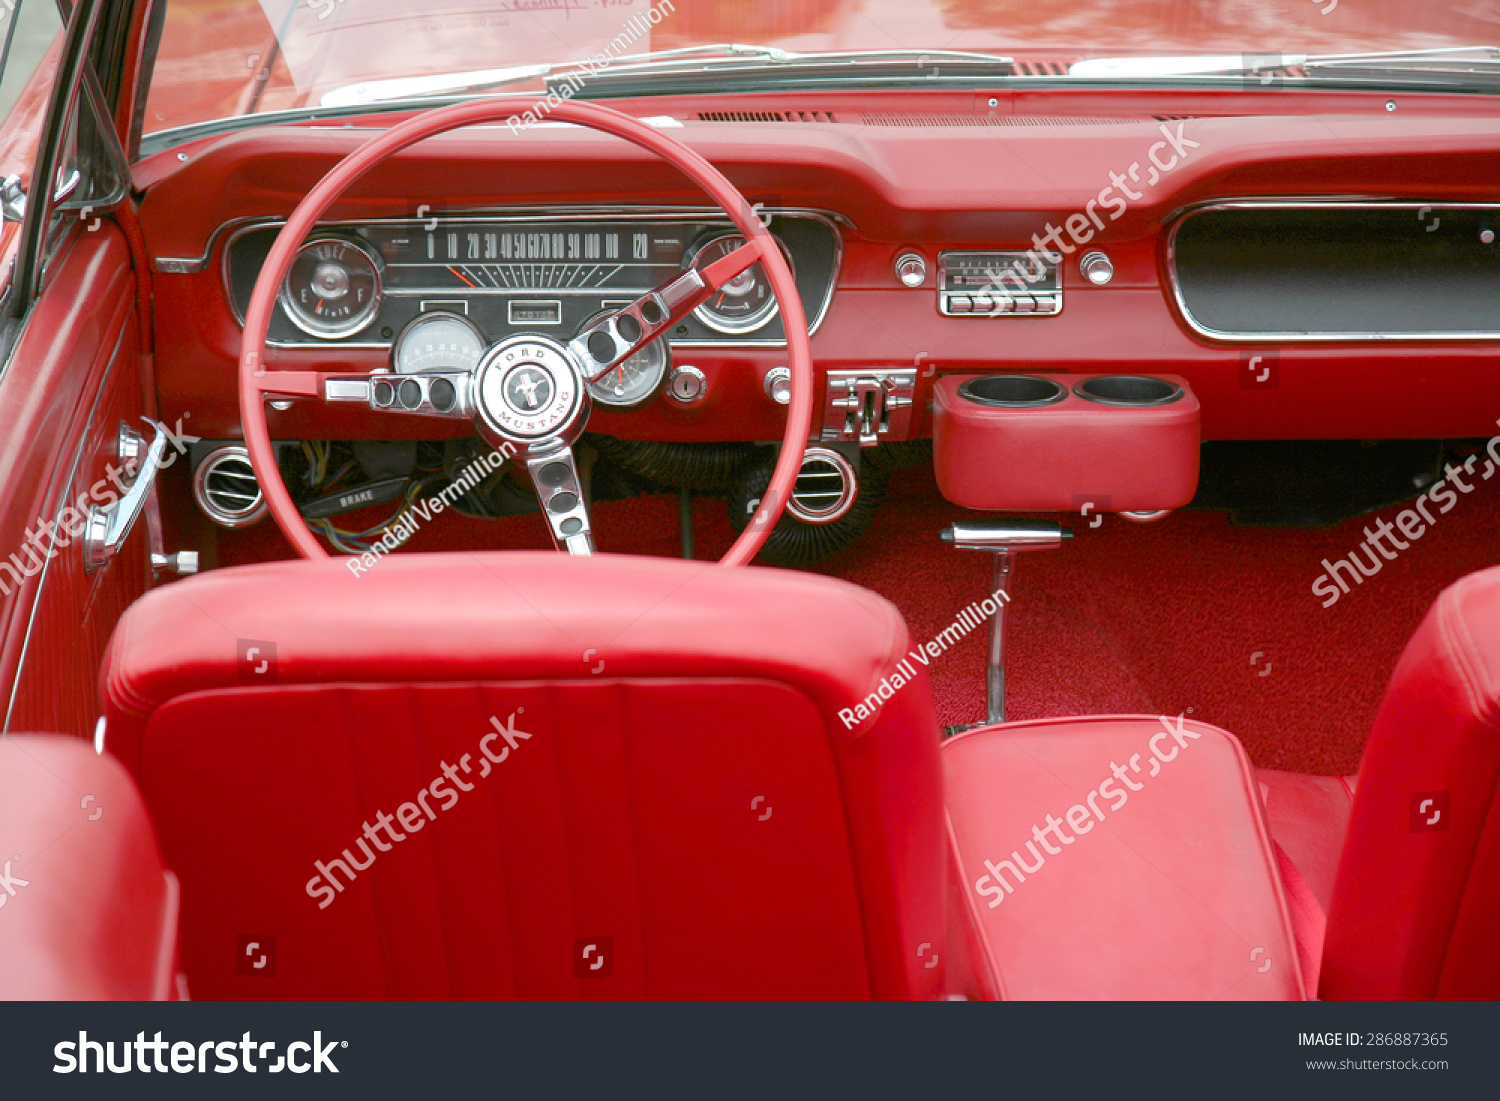 columbus ohio circa june 2015 vintage classic 1965 red ford mustang interior on display the. Black Bedroom Furniture Sets. Home Design Ideas